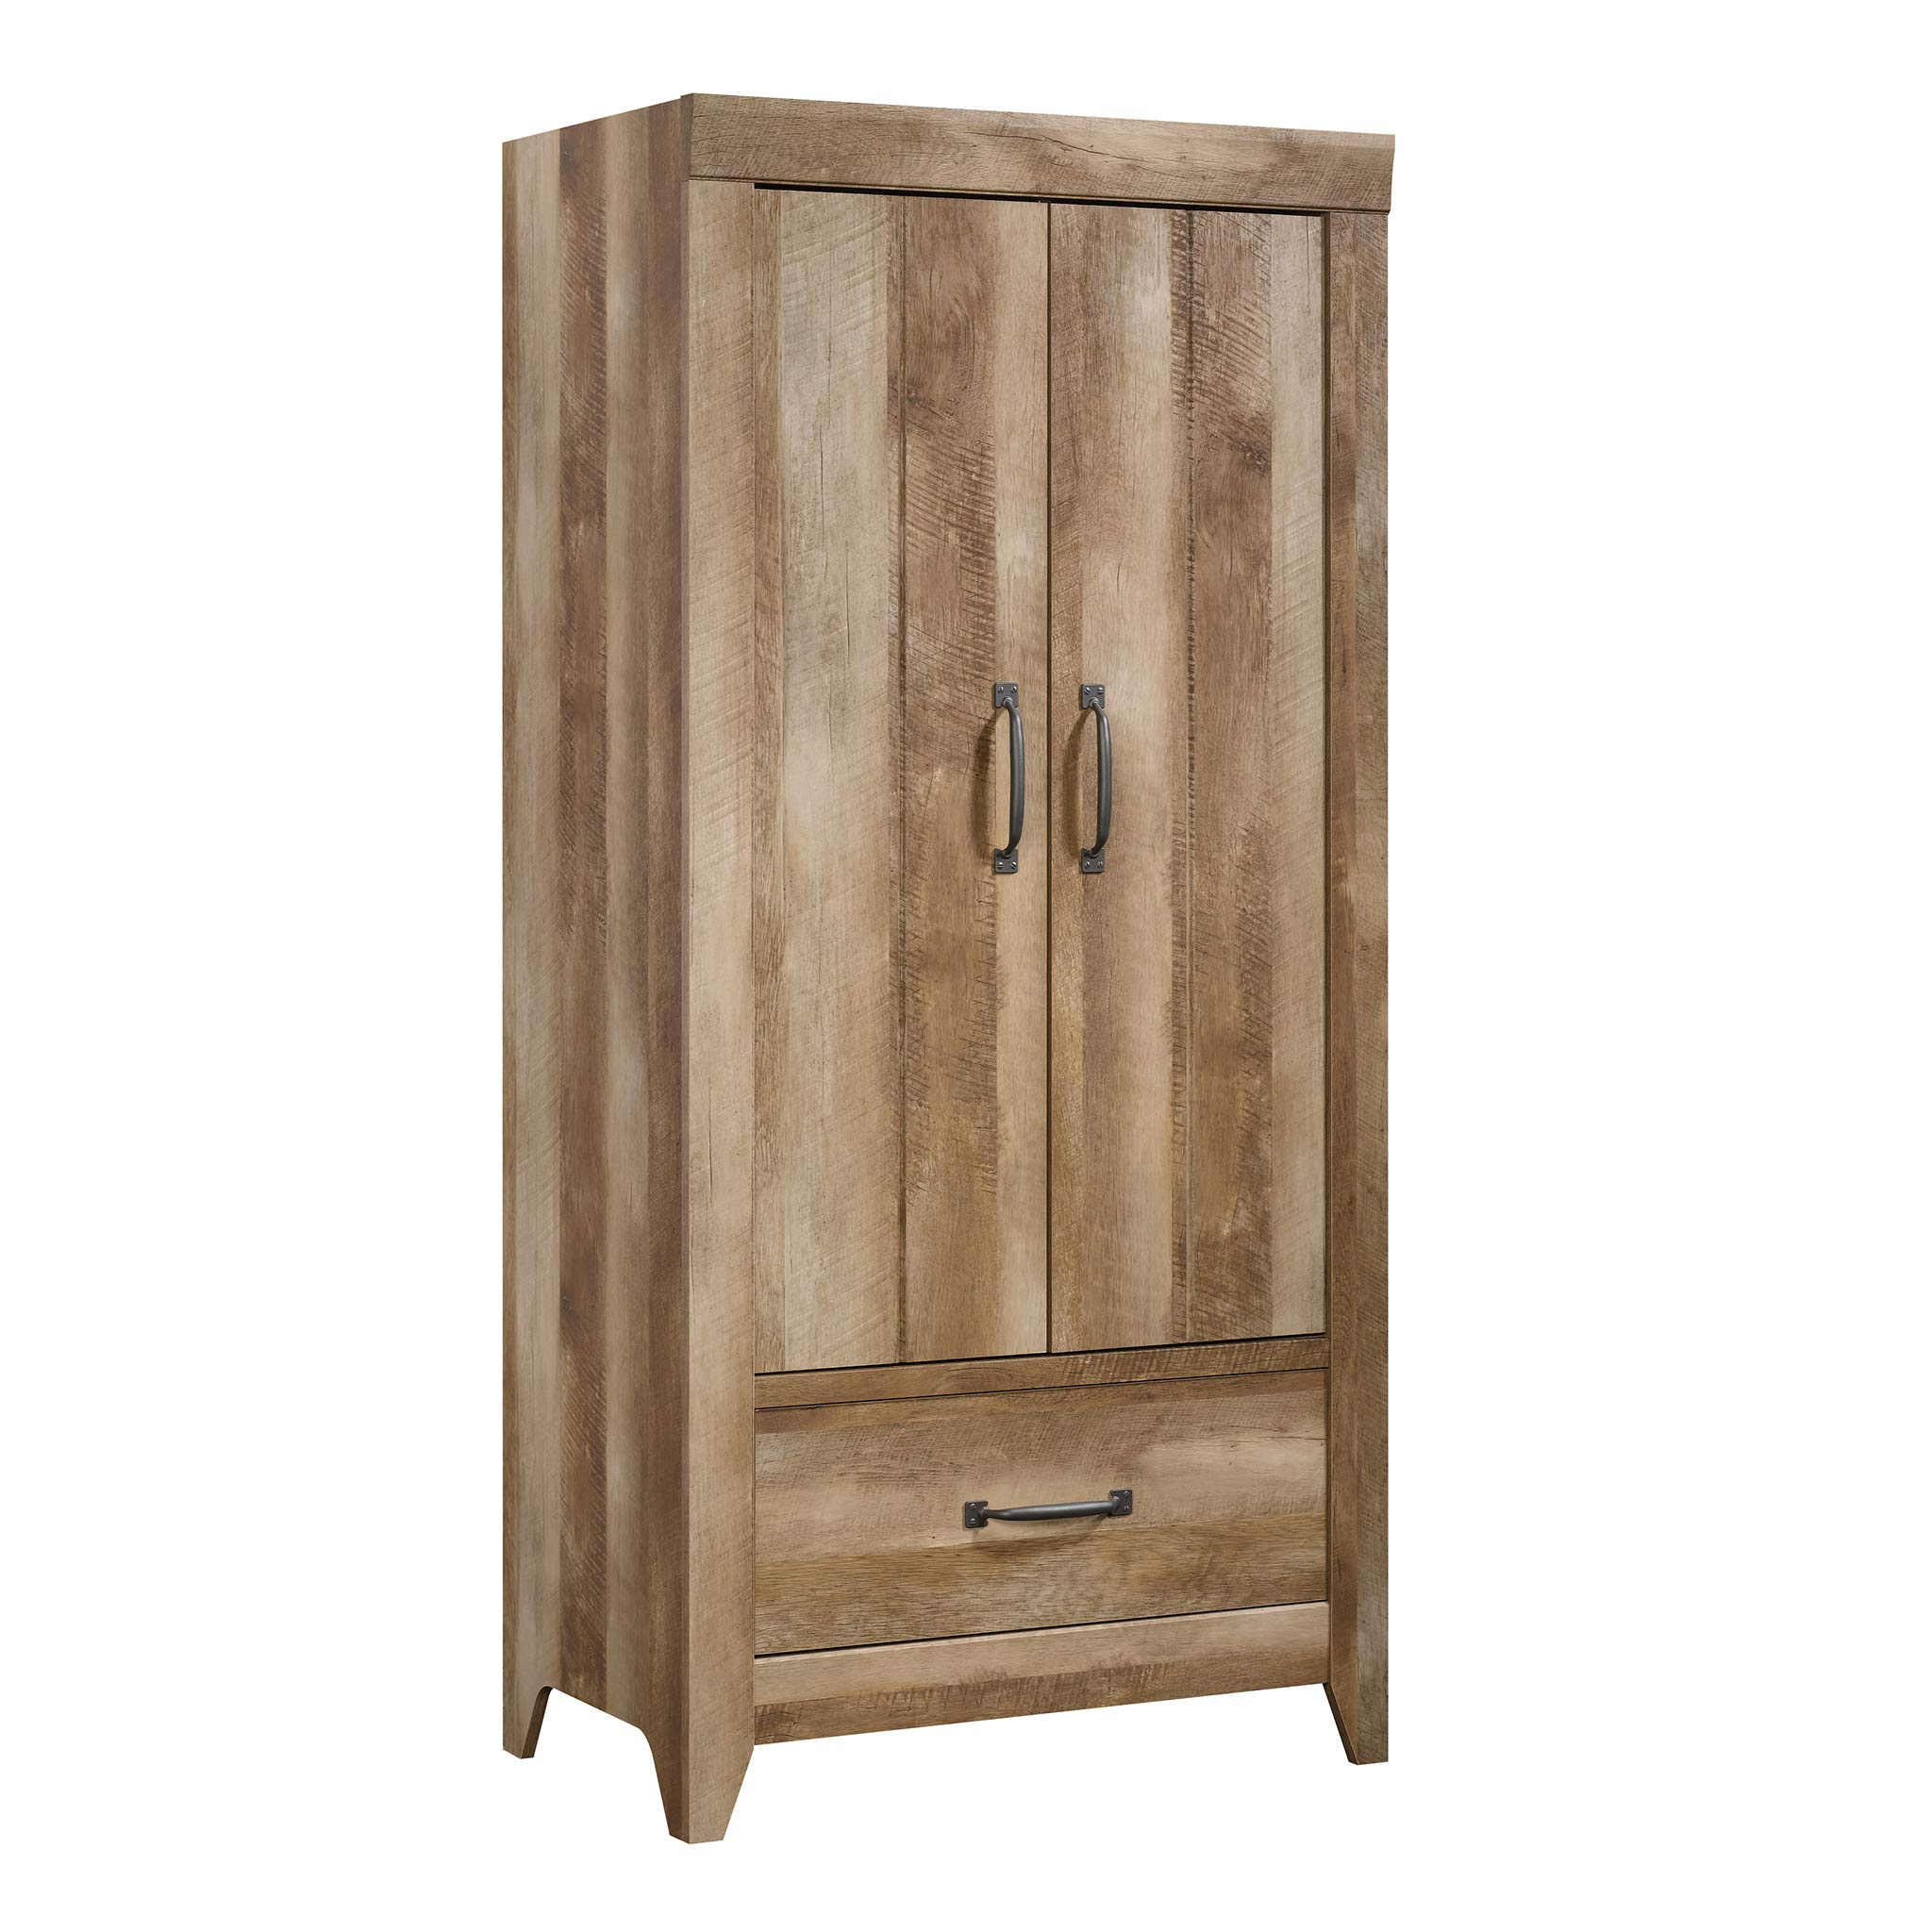 Sauder 424141 Adept Storage Wardrobe, Craftsman Oak Finish